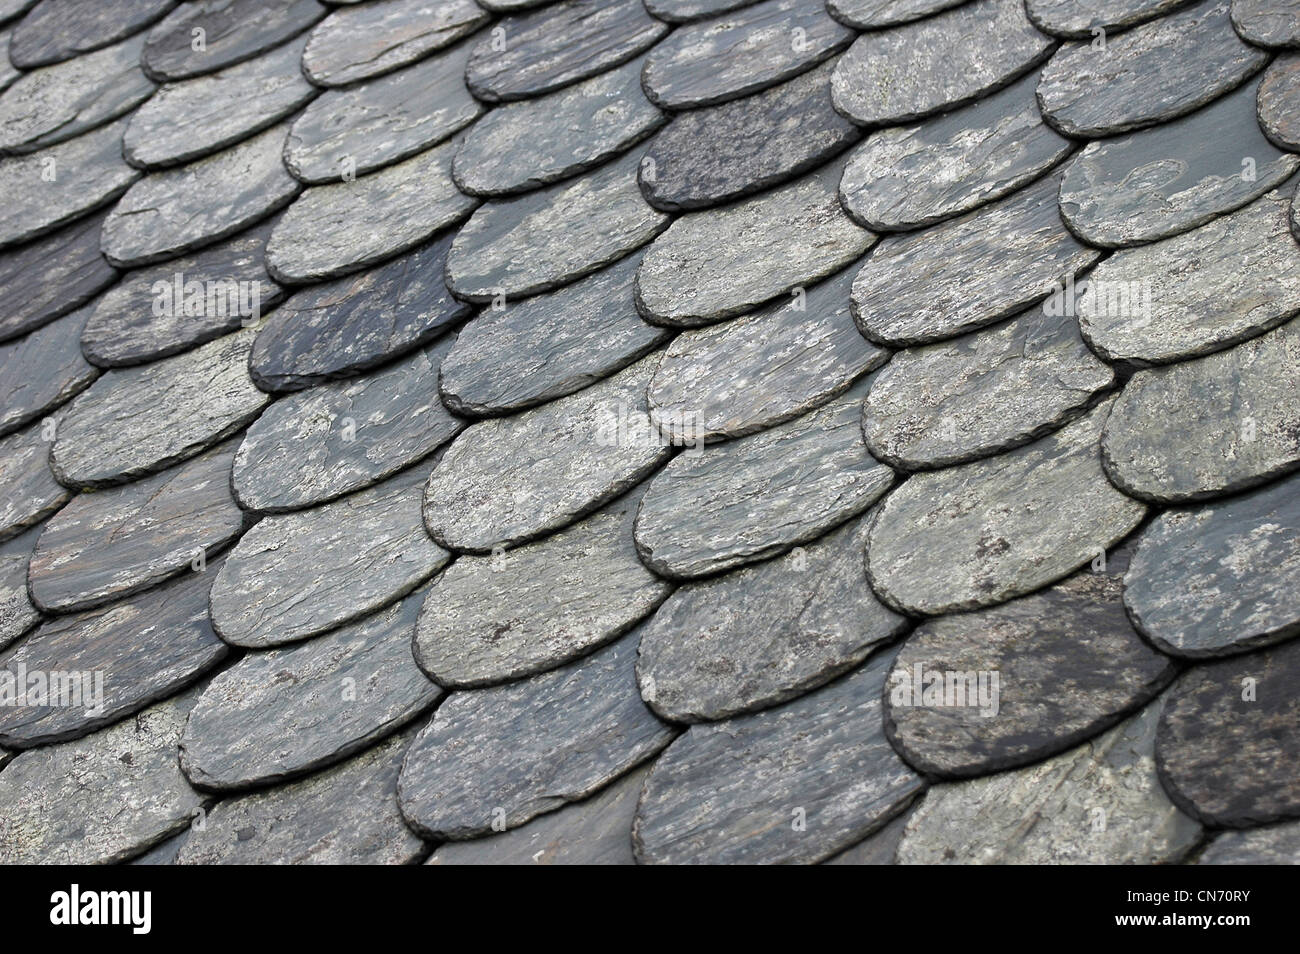 Stone Roof Tiles Stock Photos Amp Stone Roof Tiles Stock